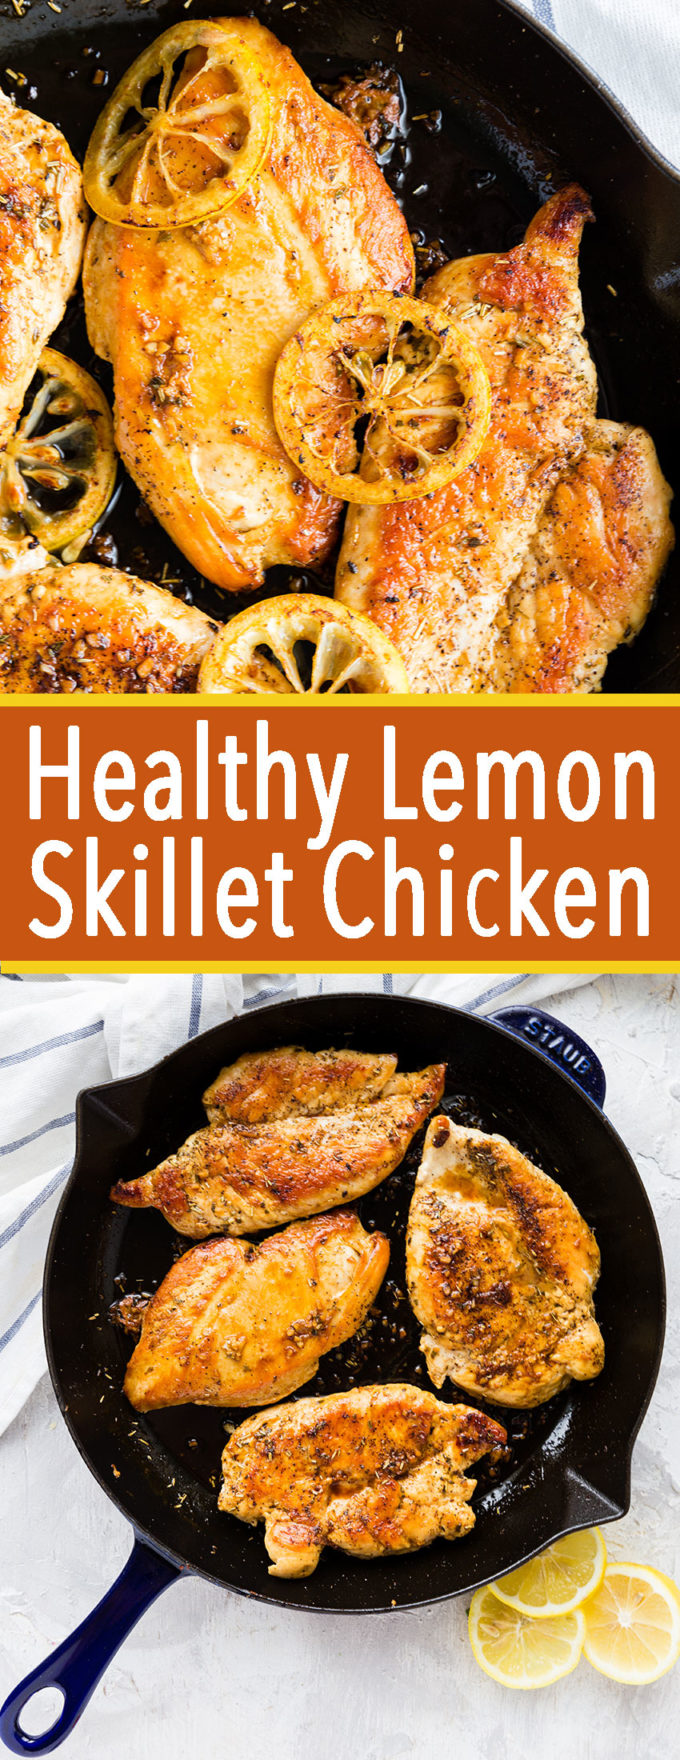 Healthy lemon skillet chicken, a delicious and easy chicken meal the whole family will love.